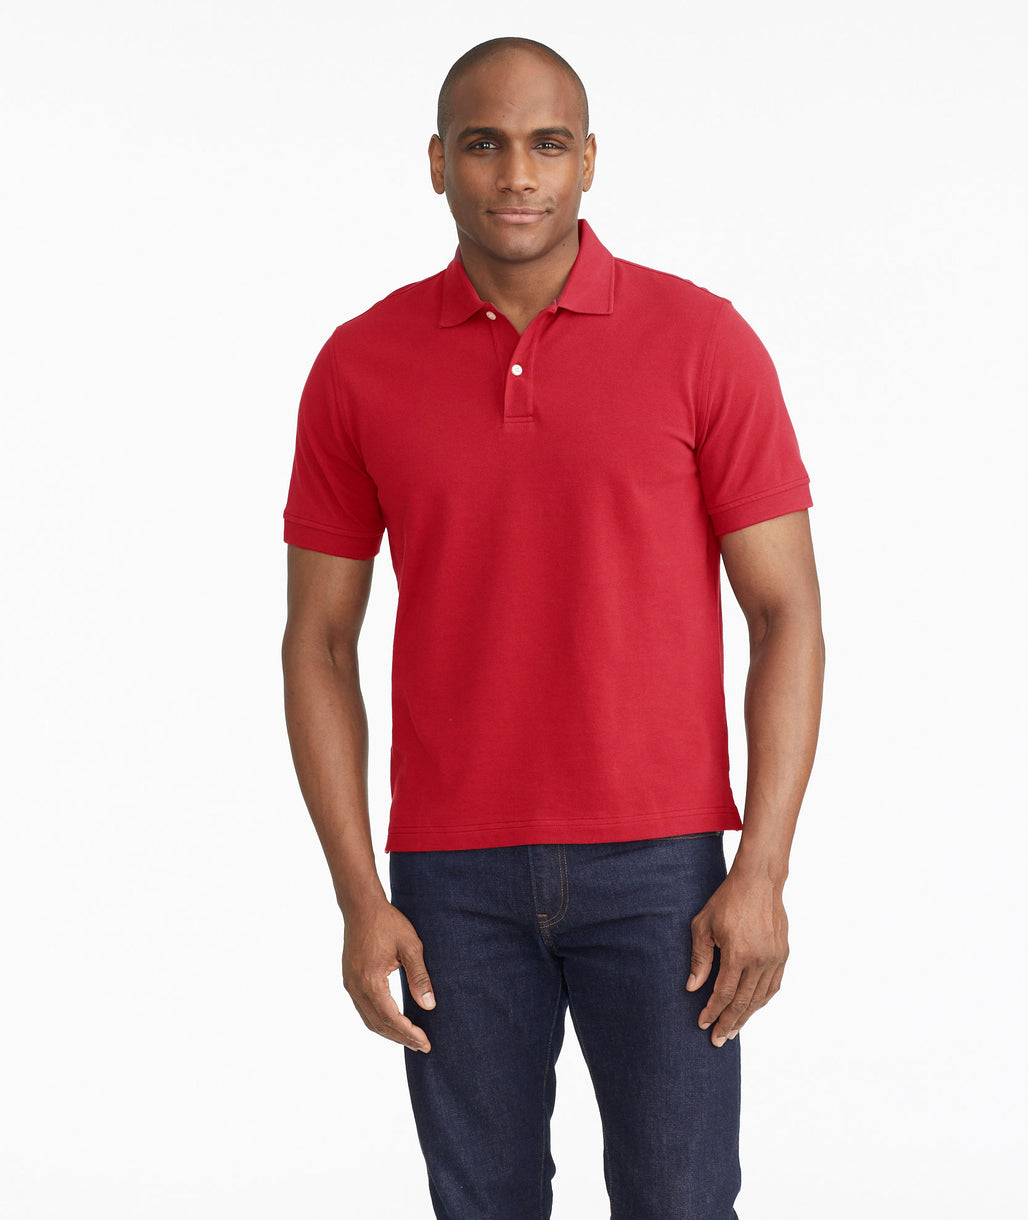 Model wearing a Mid Red Classic Pique Polo